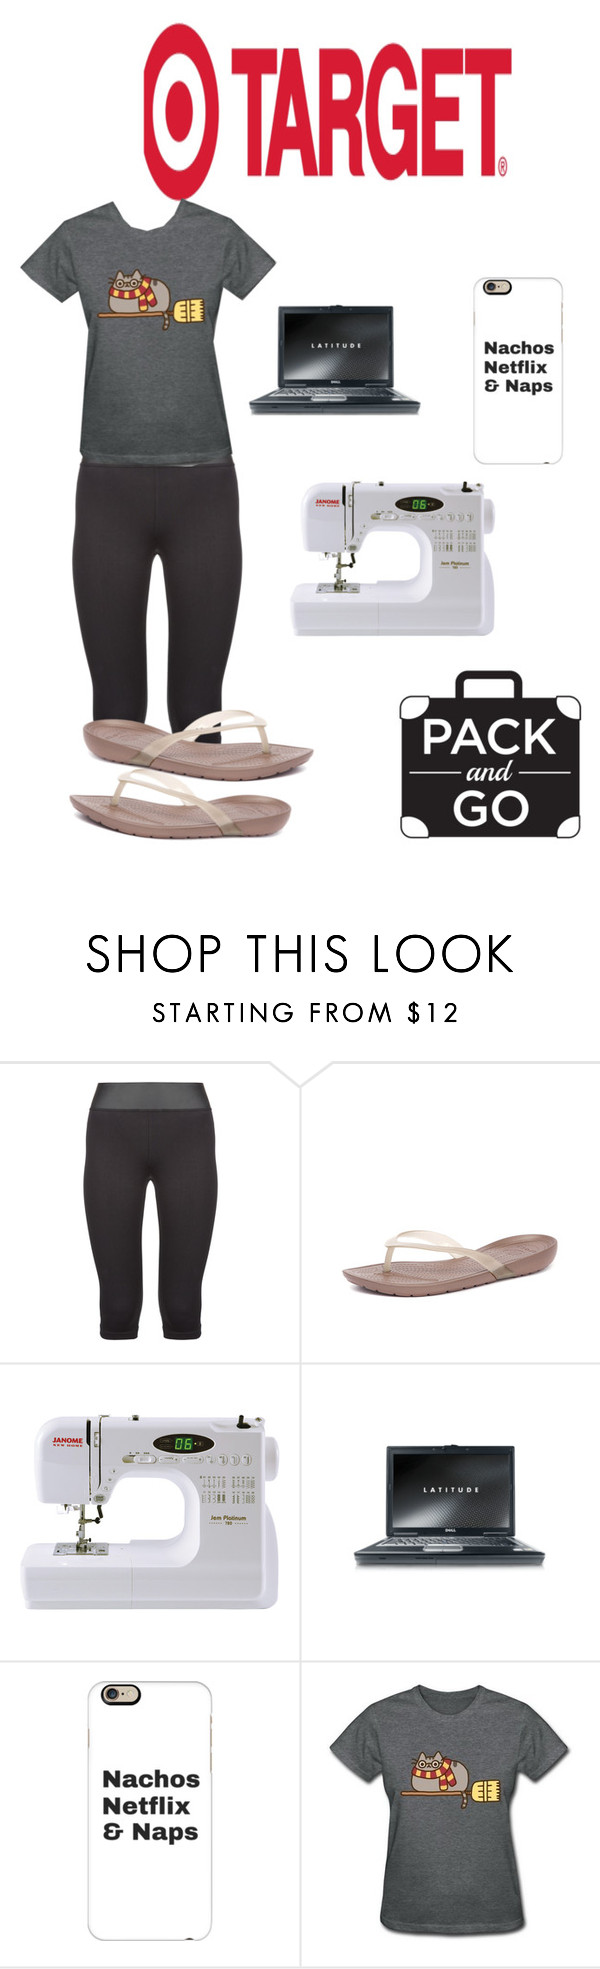 """Staycation #packandgo"" by kelly-haven-russell ❤ liked on Polyvore featuring Olympia, Crocs, JEM, Casetify and Pusheen"